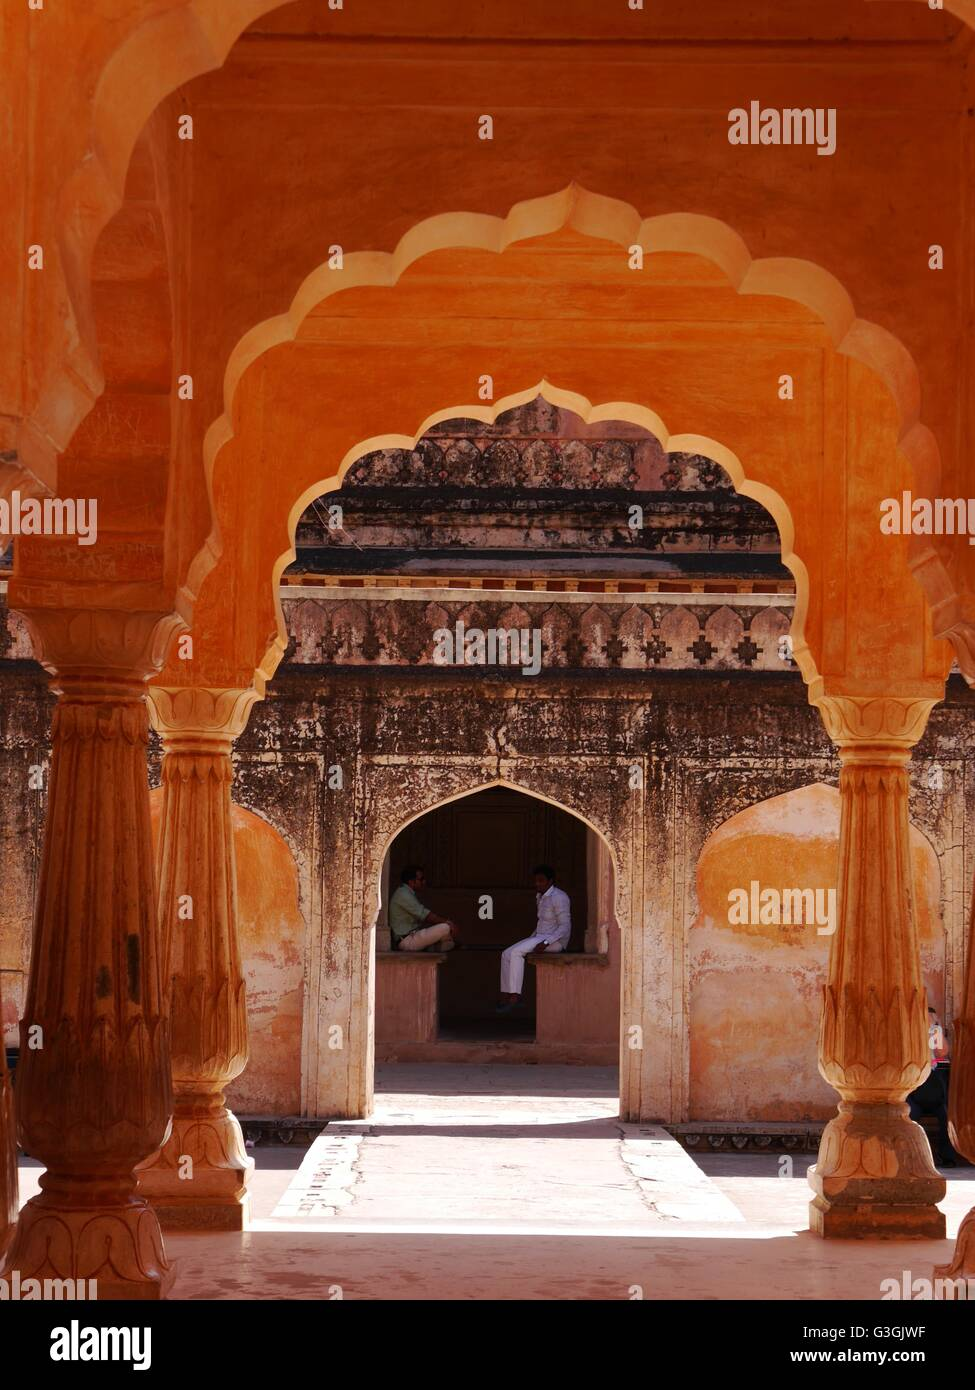 Picturesque view through successive amber archways of two men talking in the City Palace (Chandra Mahal) Jaipur - Stock Image